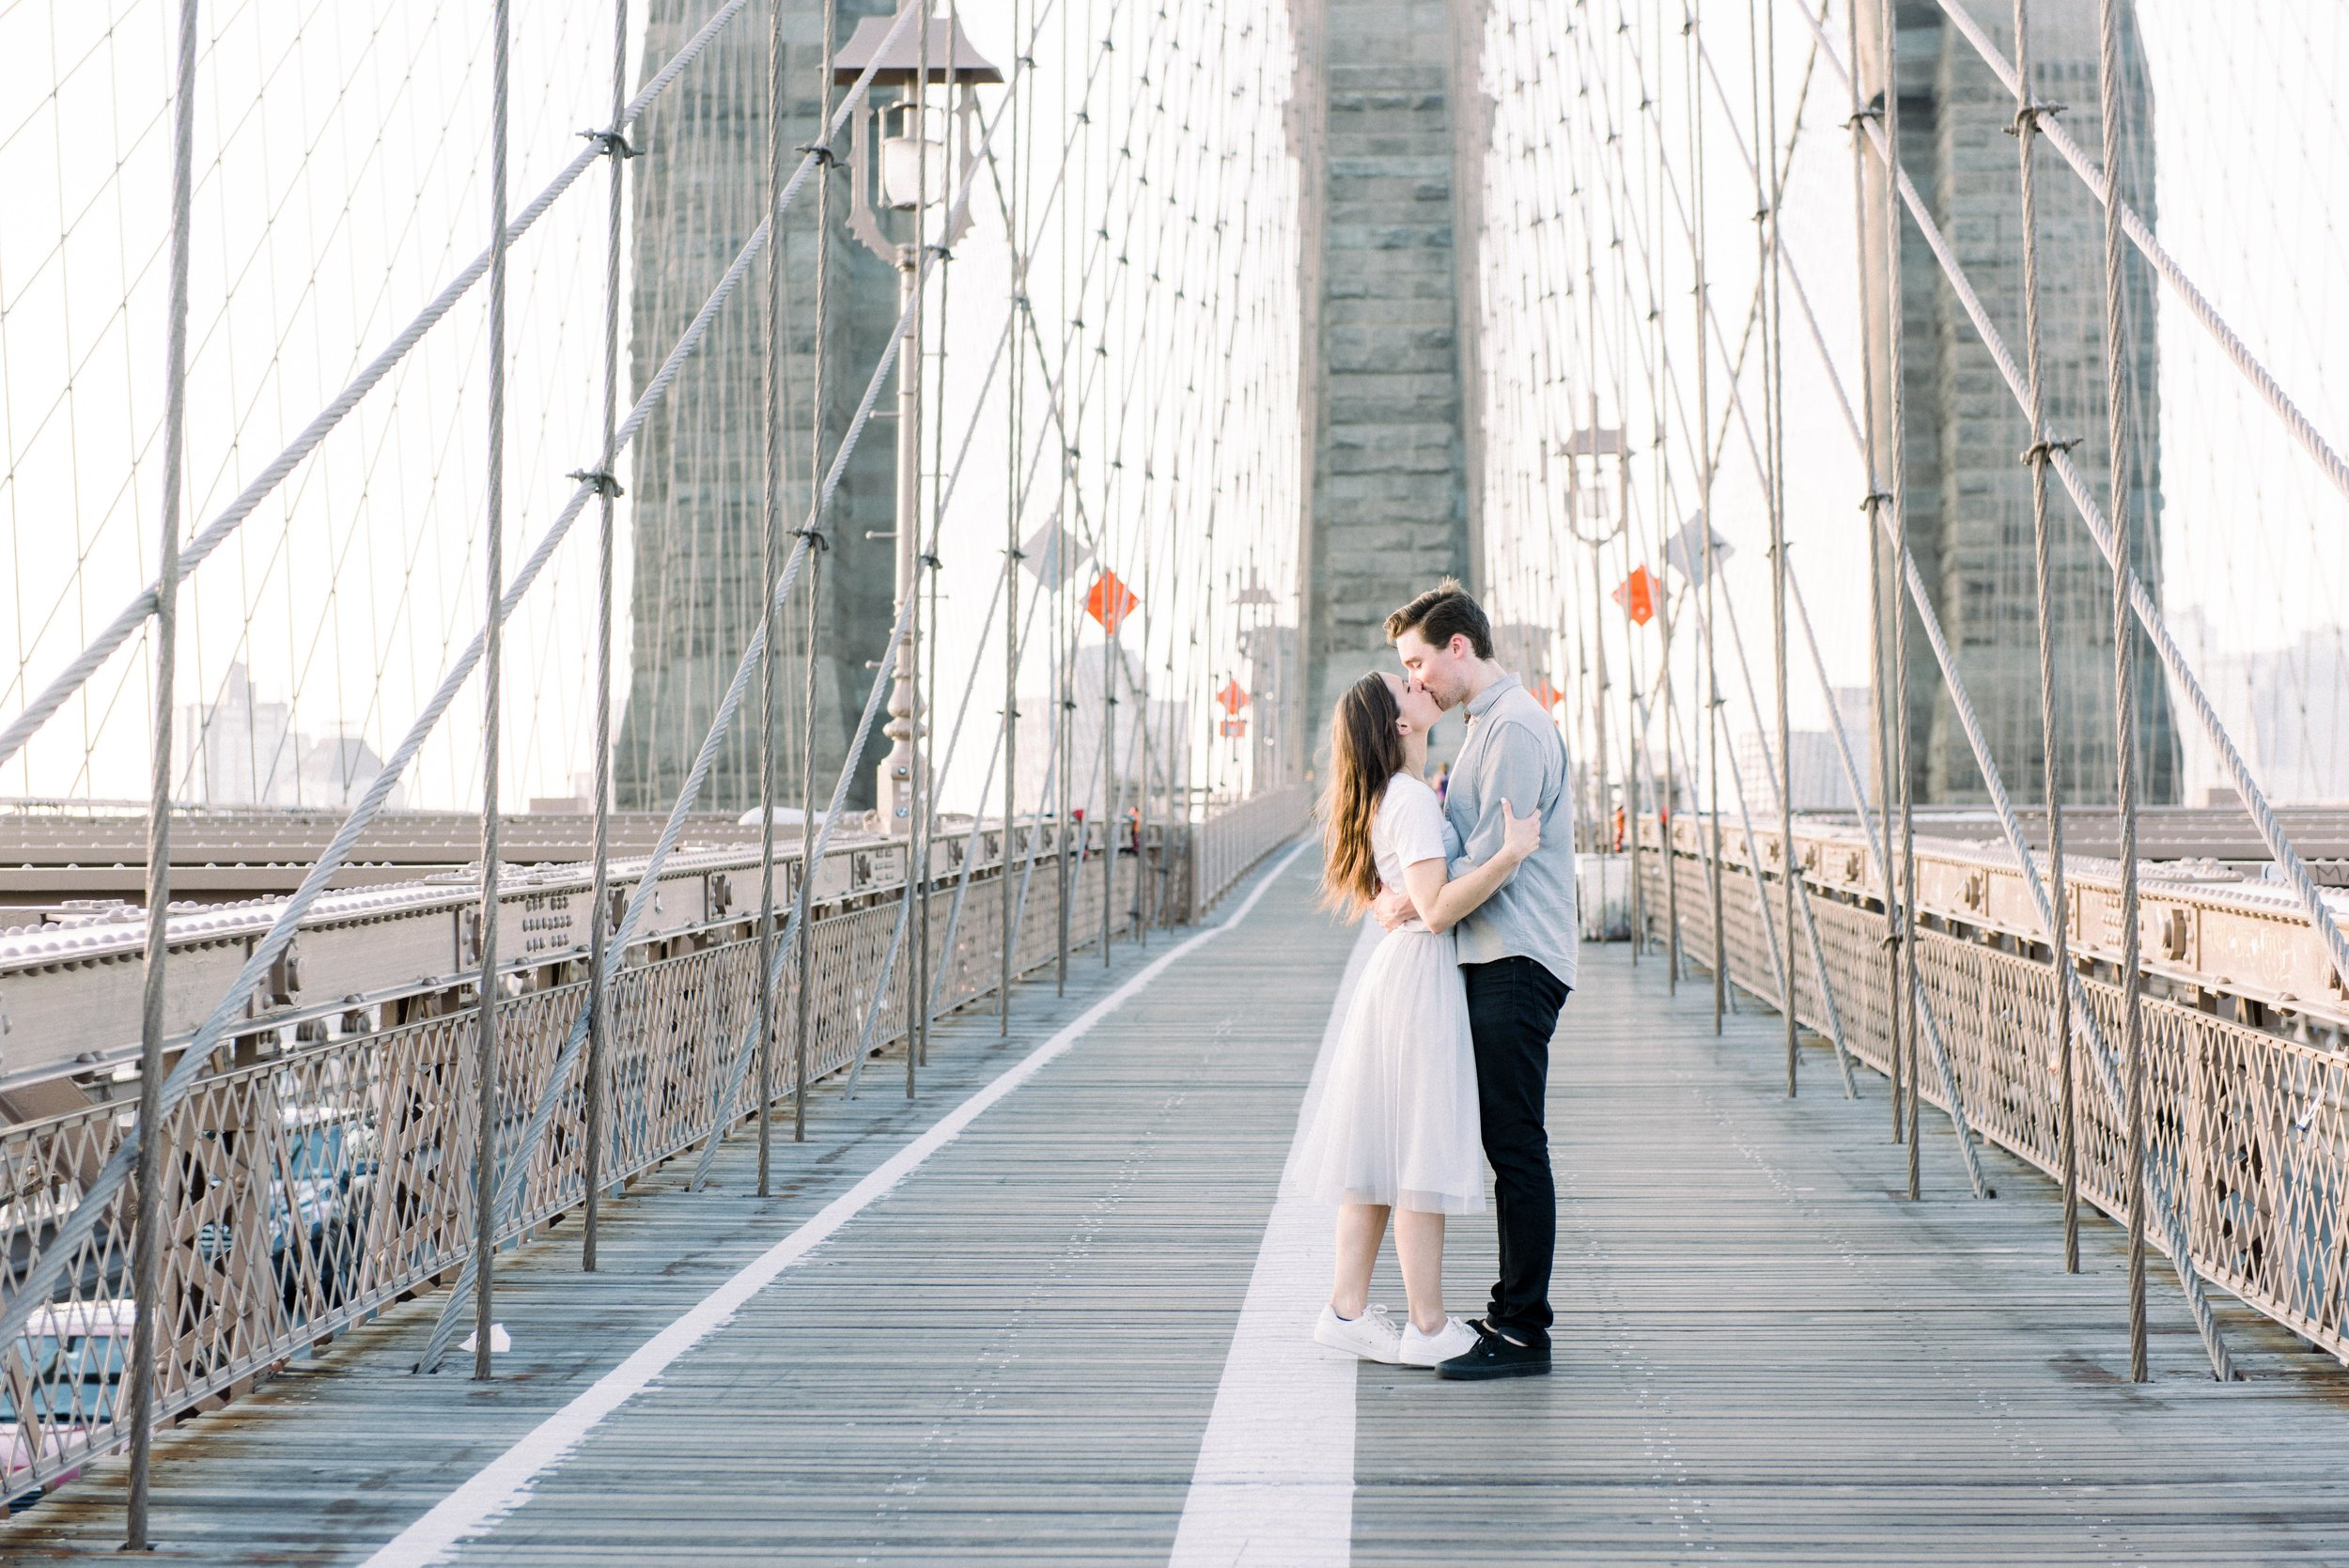 Brooklyn Bridge Engagement, Brooklyn Bridge Proposal, Brooklyn Bridge Golden Hour, Brooklyn Bridge Kiss, Brooklyn Bridge Sunrise Engagement Session